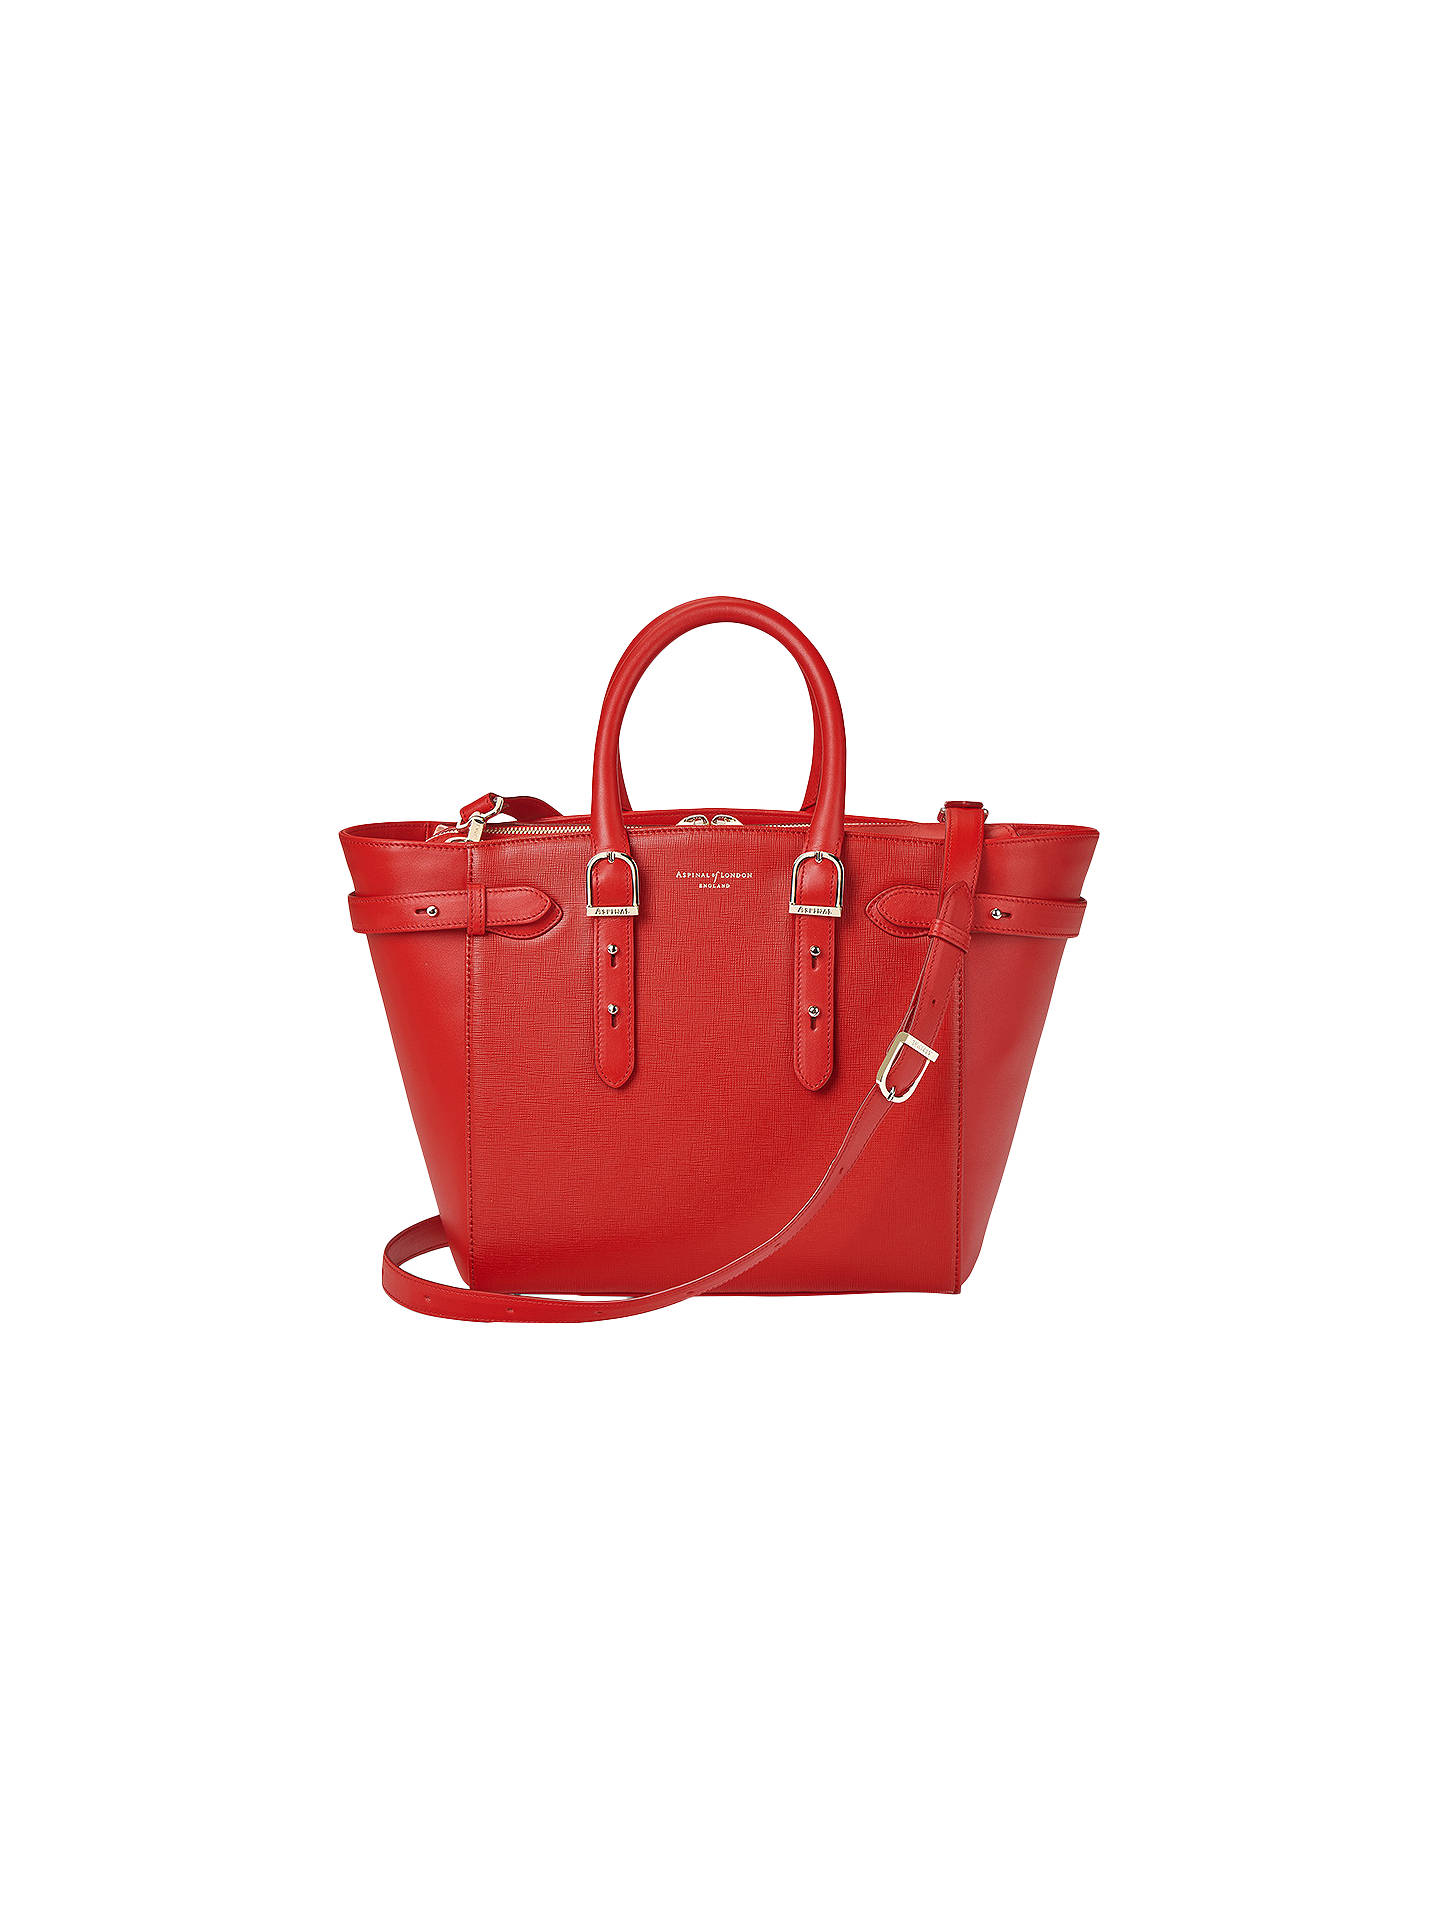 BuyAspinal of London Marylebone Midi Leather Tote Bag, Carrera Scarlet  Online at johnlewis.com ... cae0c4f3cd